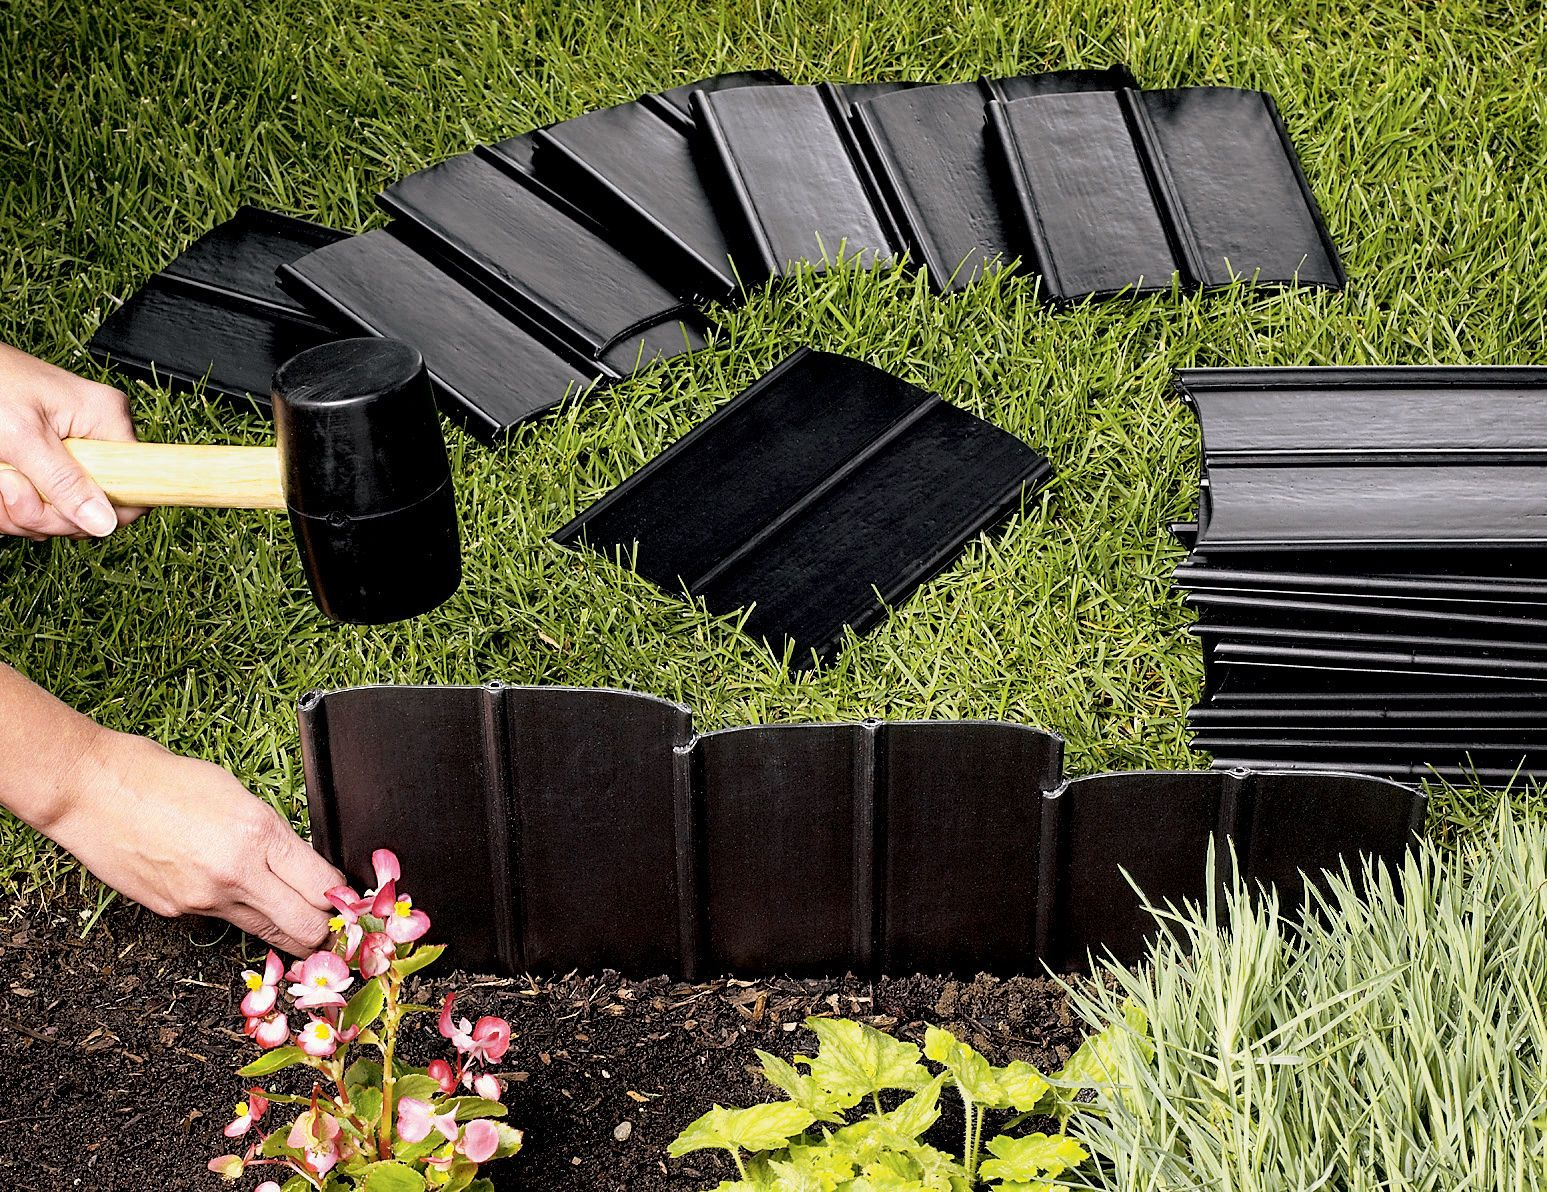 pound in landscape edging plastic garden edging gardenerscom 1 set makes a 20 edge 12 4995 - Plastic Garden Edging